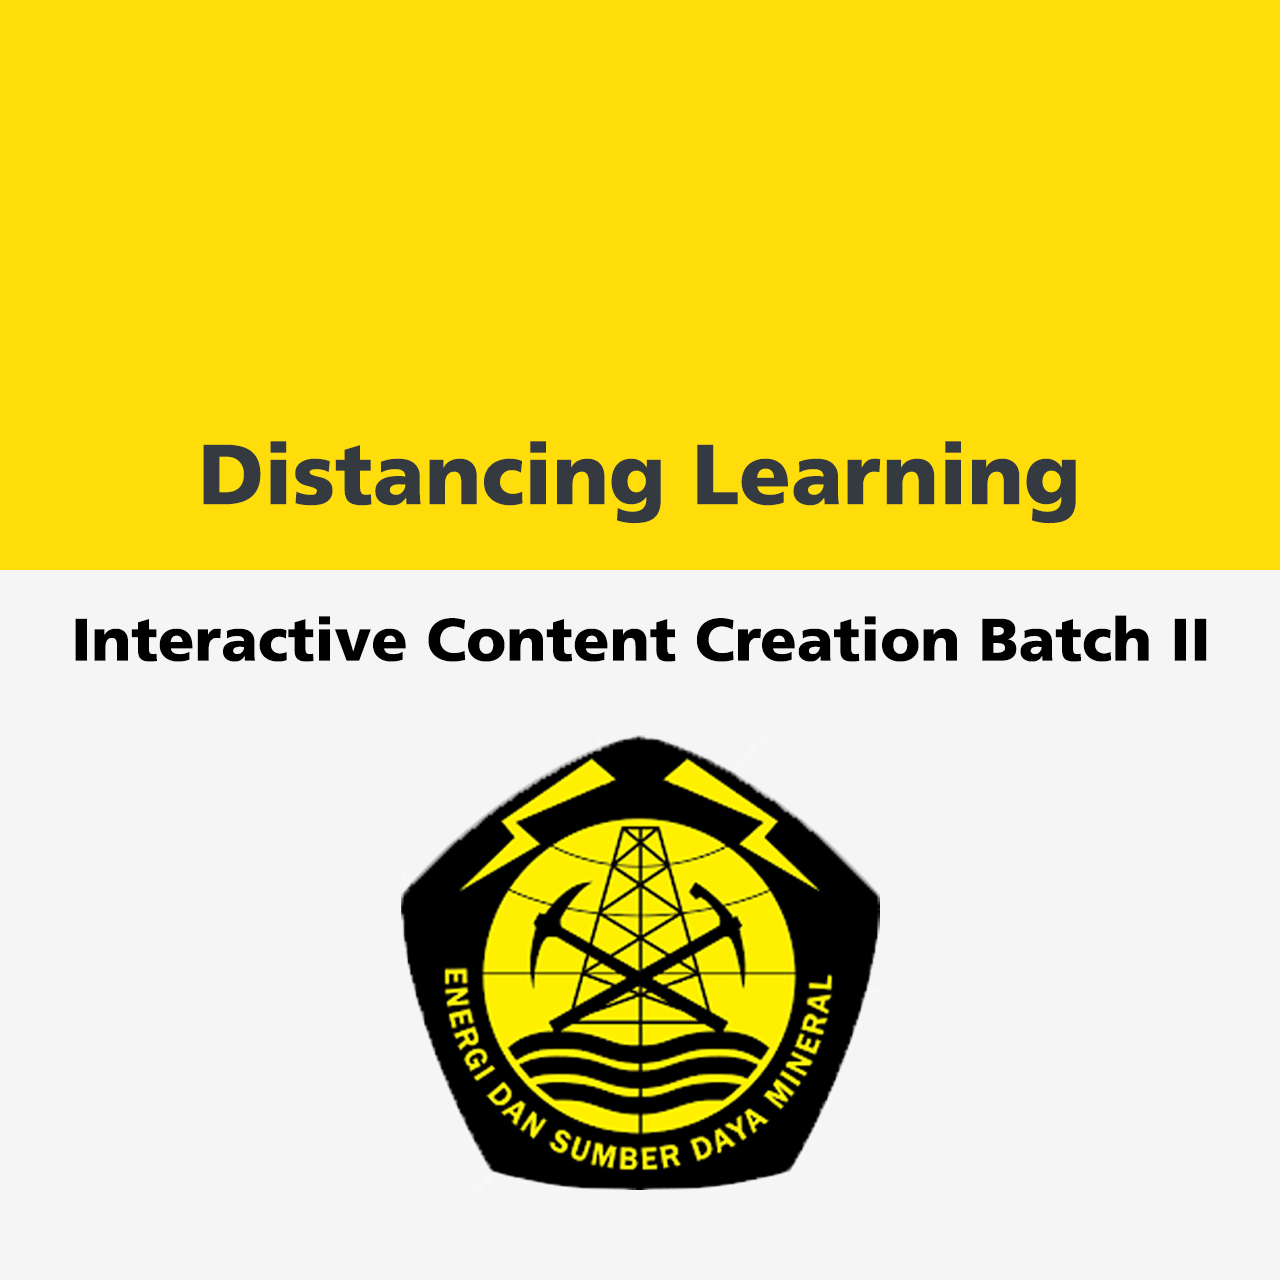 Distancing Learning : Interactive Content Creation Batch II